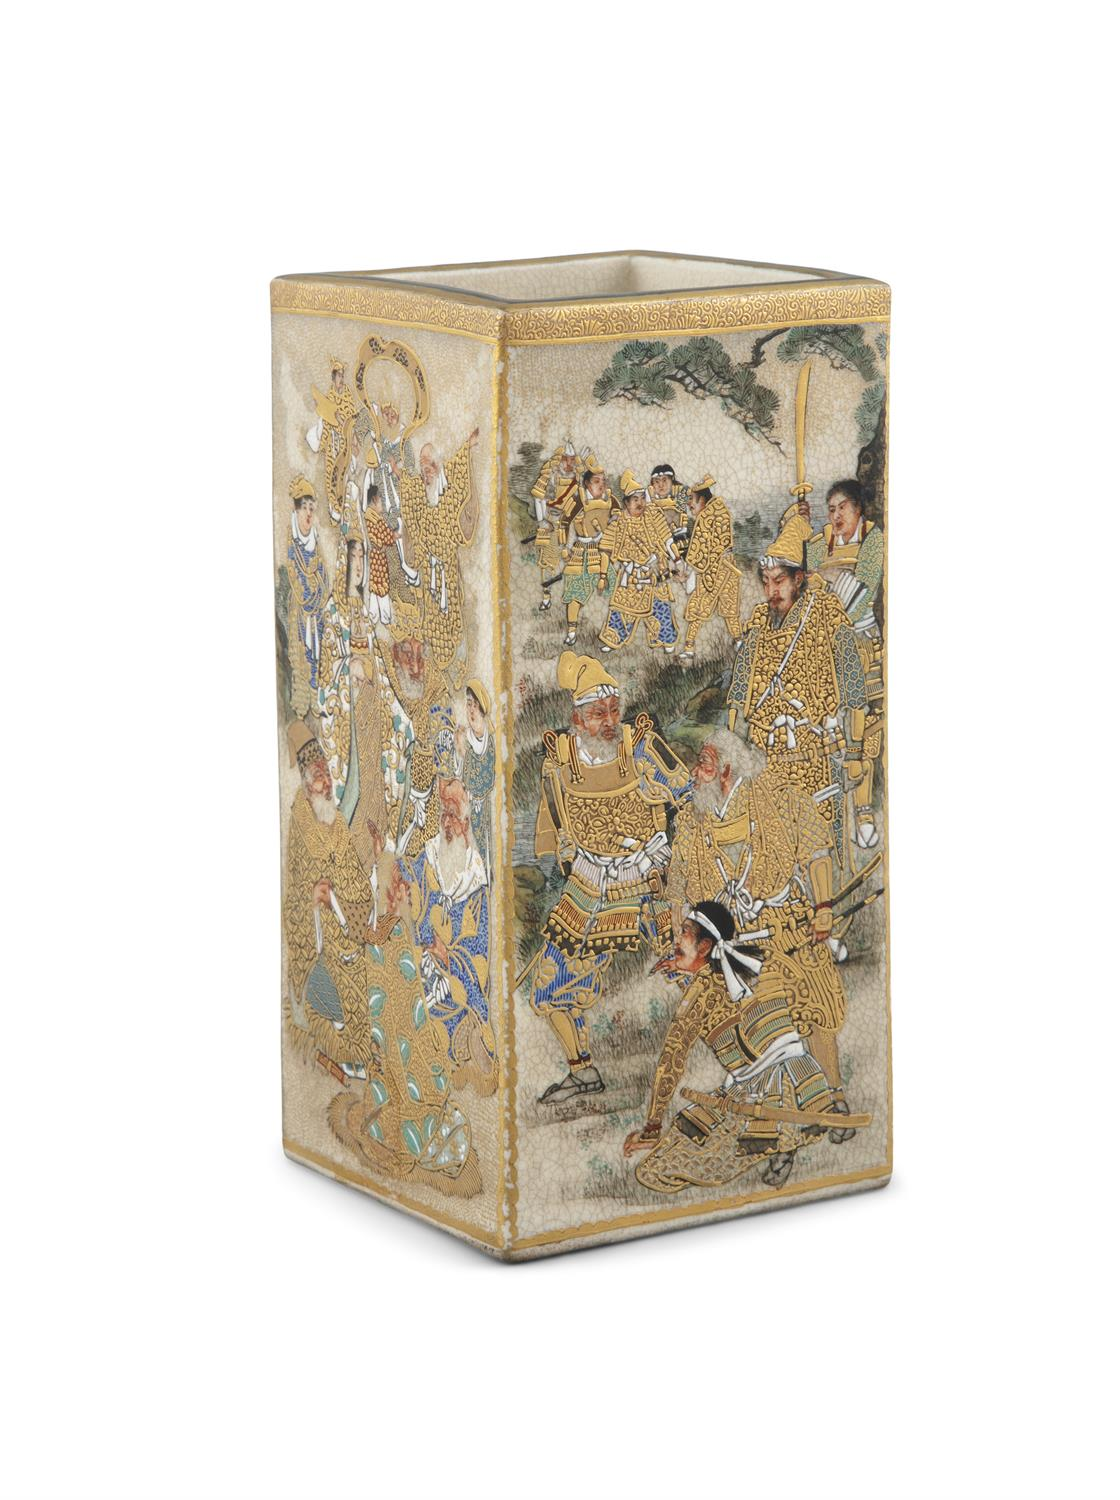 A SATSUMA 'WARRIORS' SQUARE POT POSSIBLY BY RYUZAN 龍山 Japan, Meiji period Richly adorned in gilt and - Image 3 of 14